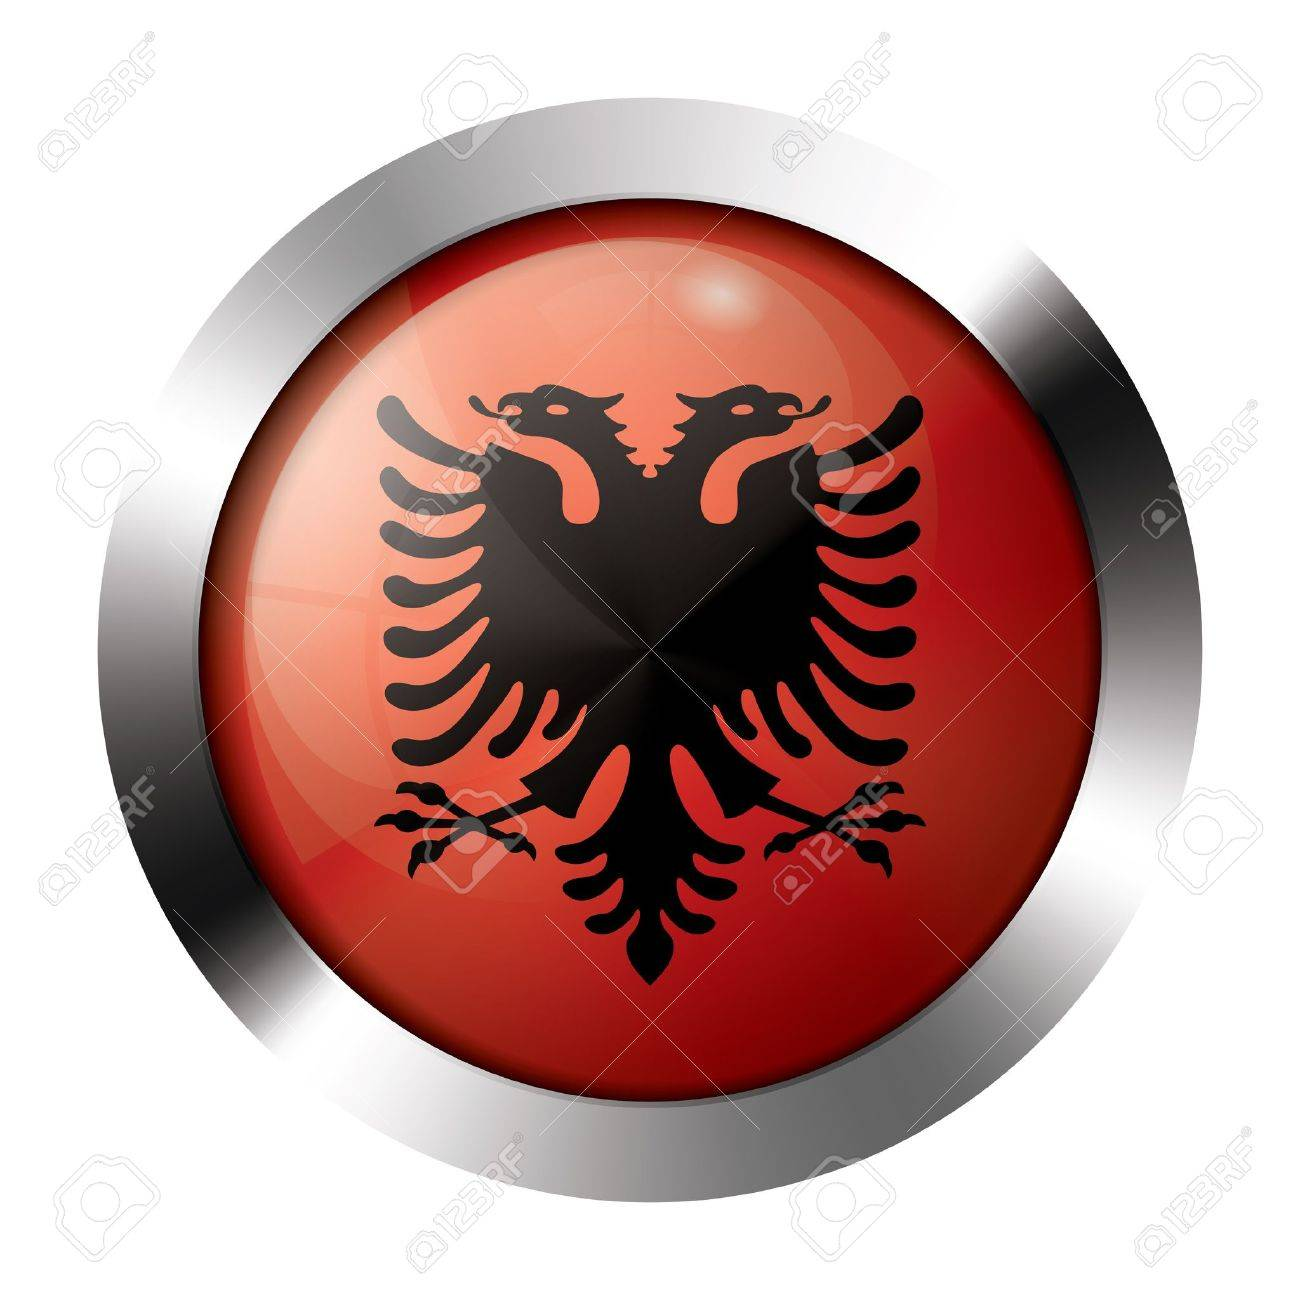 Round shiny metal button with flag of albania europe Stock Vector - 15624457